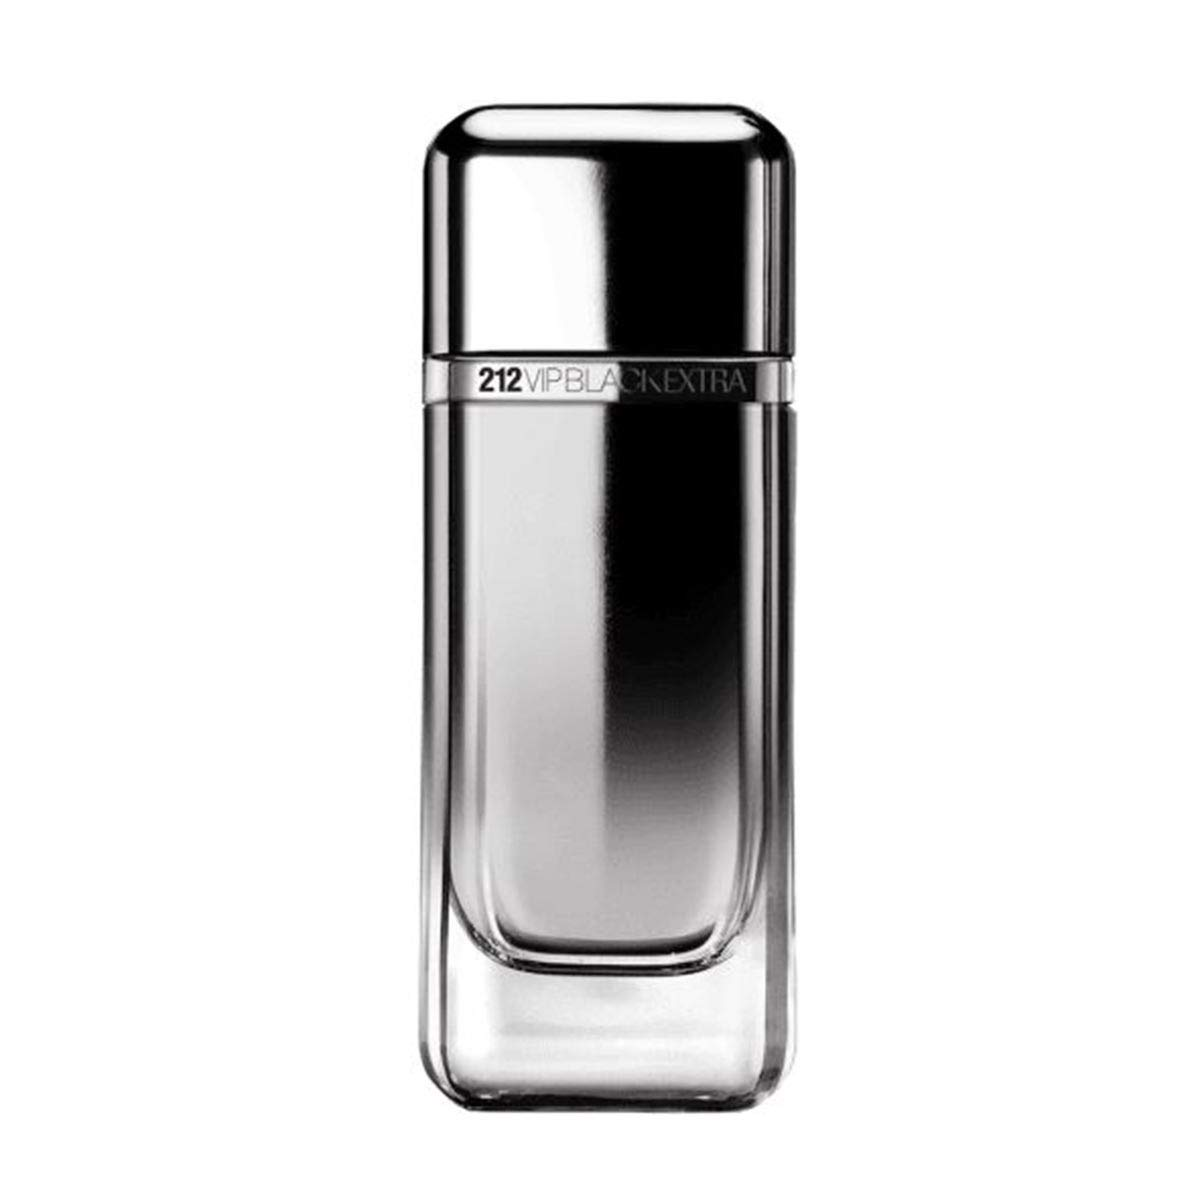 0964de082 Amazon.com   Carolina Herrera 212 VIP Black Own The Party Extra 100ml Eau  De Parfum For Men Limited Edition 2019 ...   Beauty